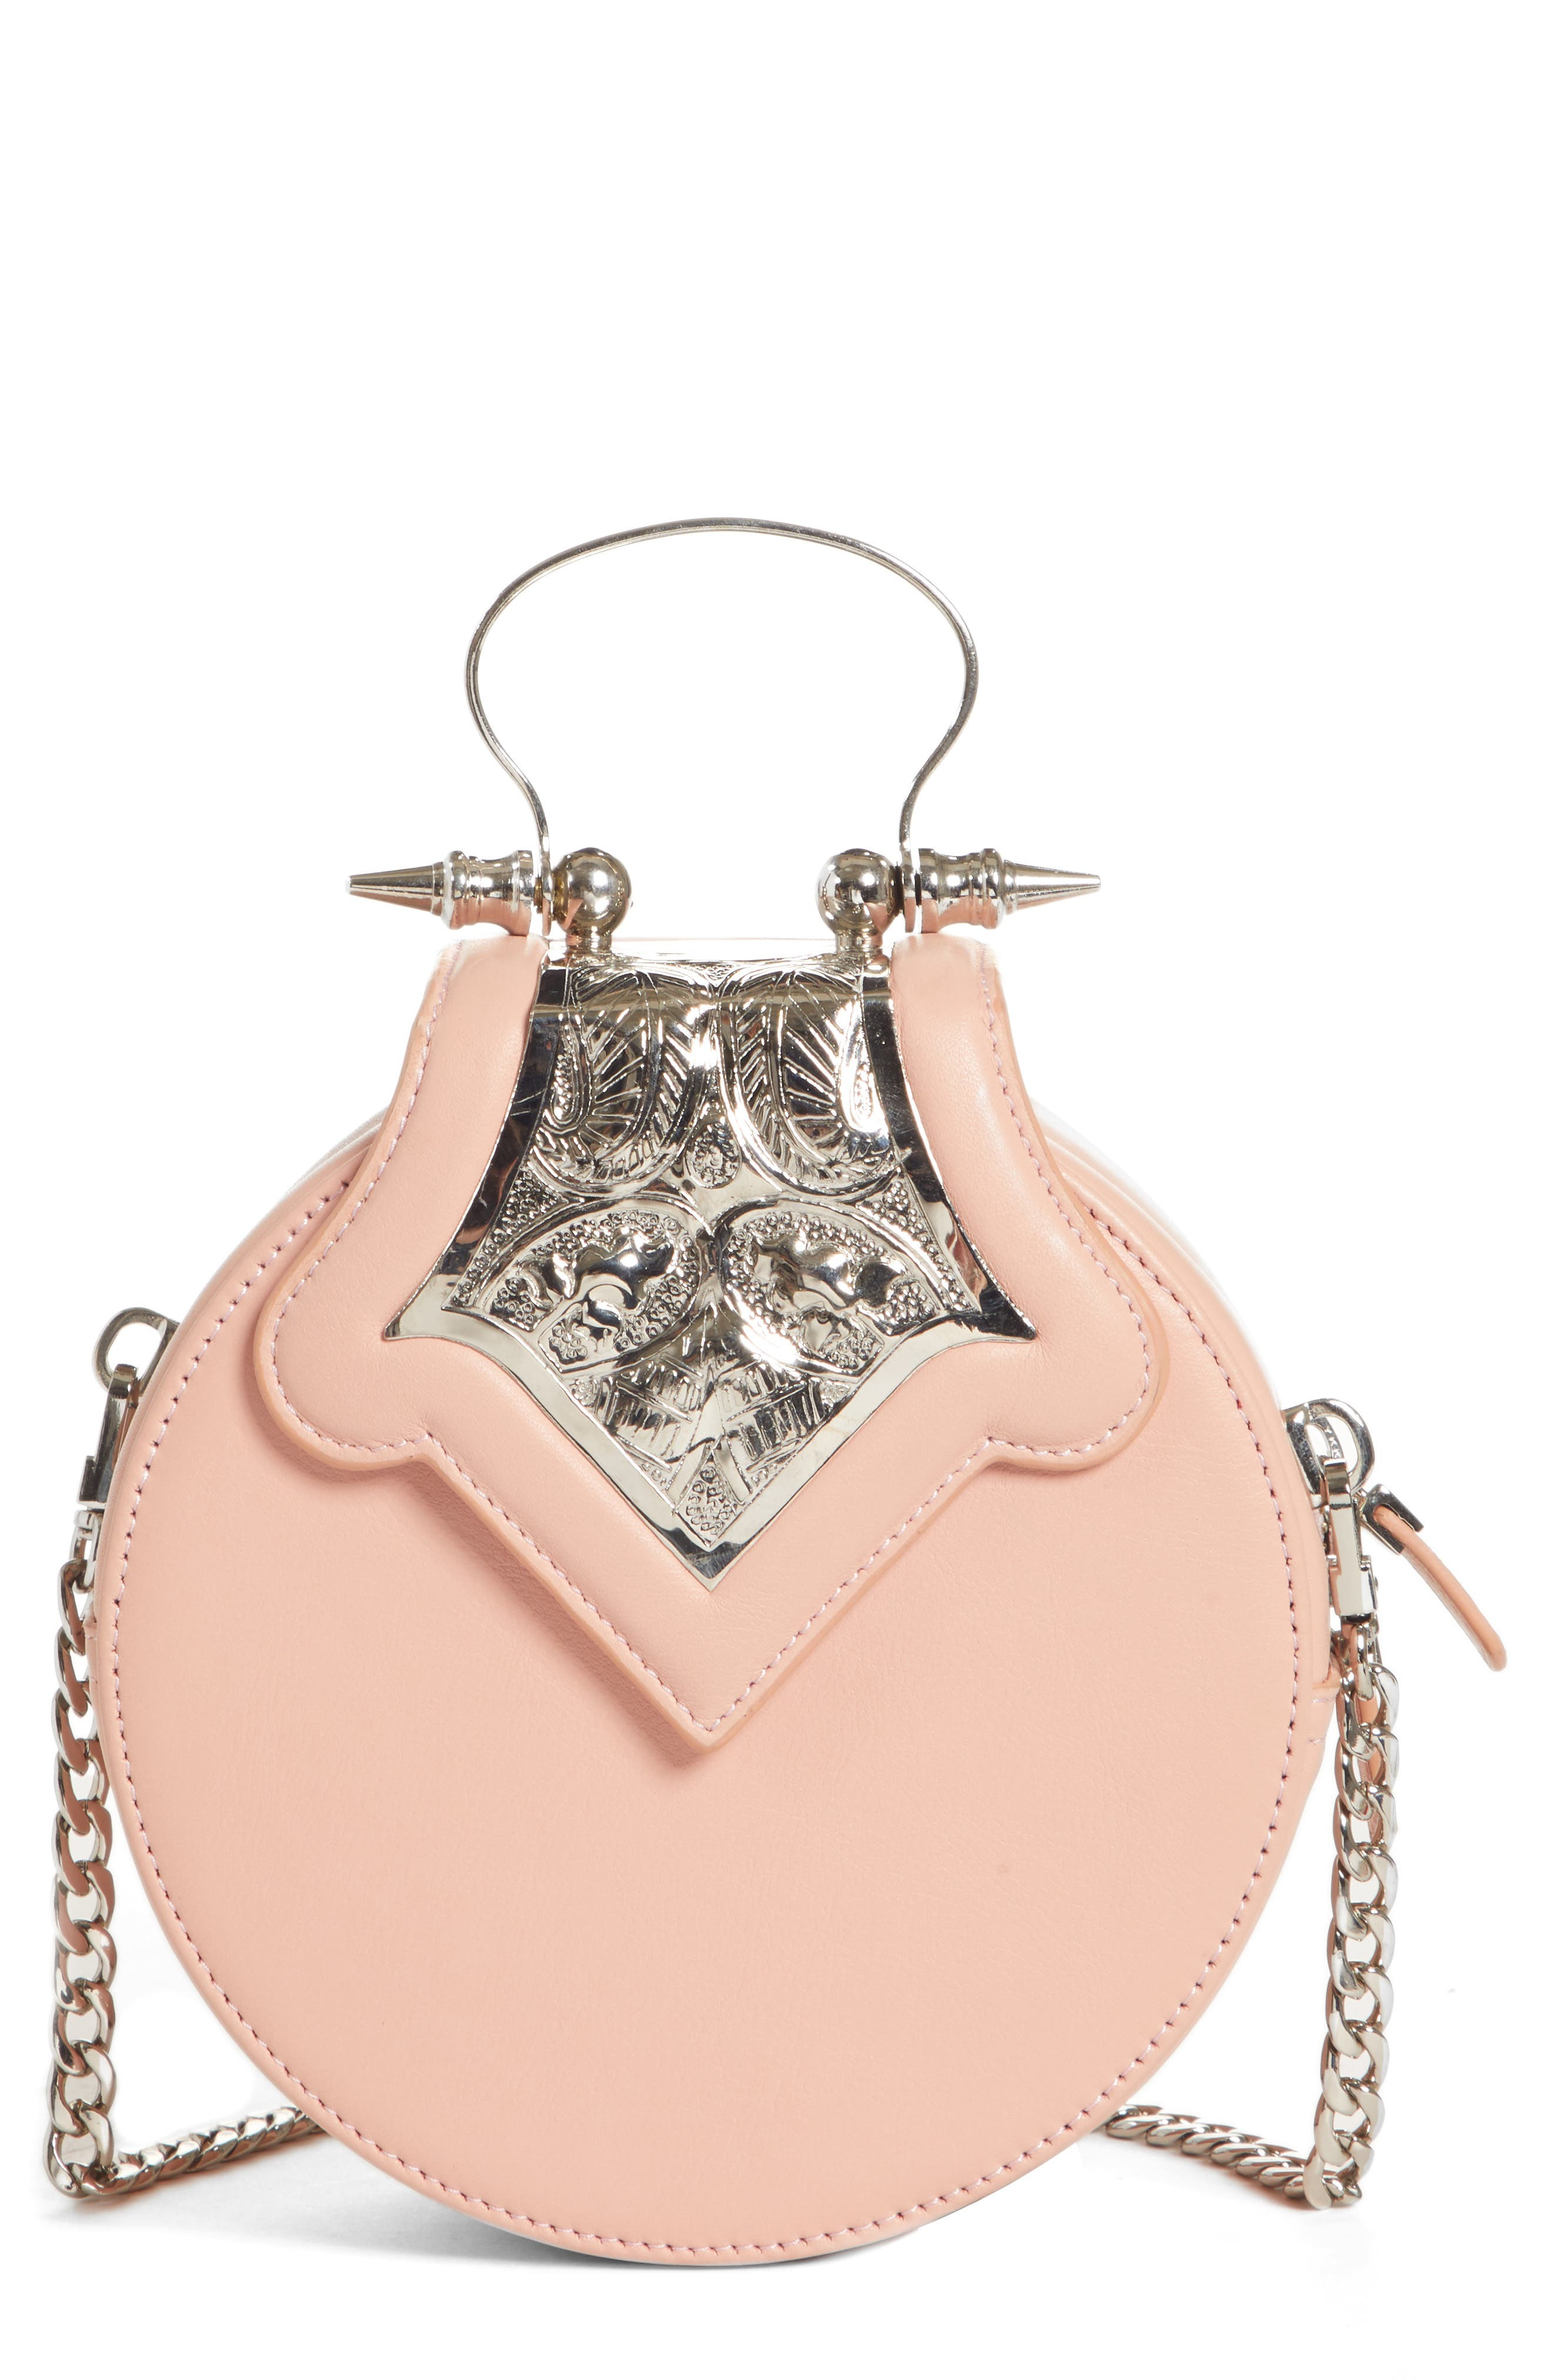 OKHTEIN Mini Dome Crossbody Clutch - Pink in Nude X Silver